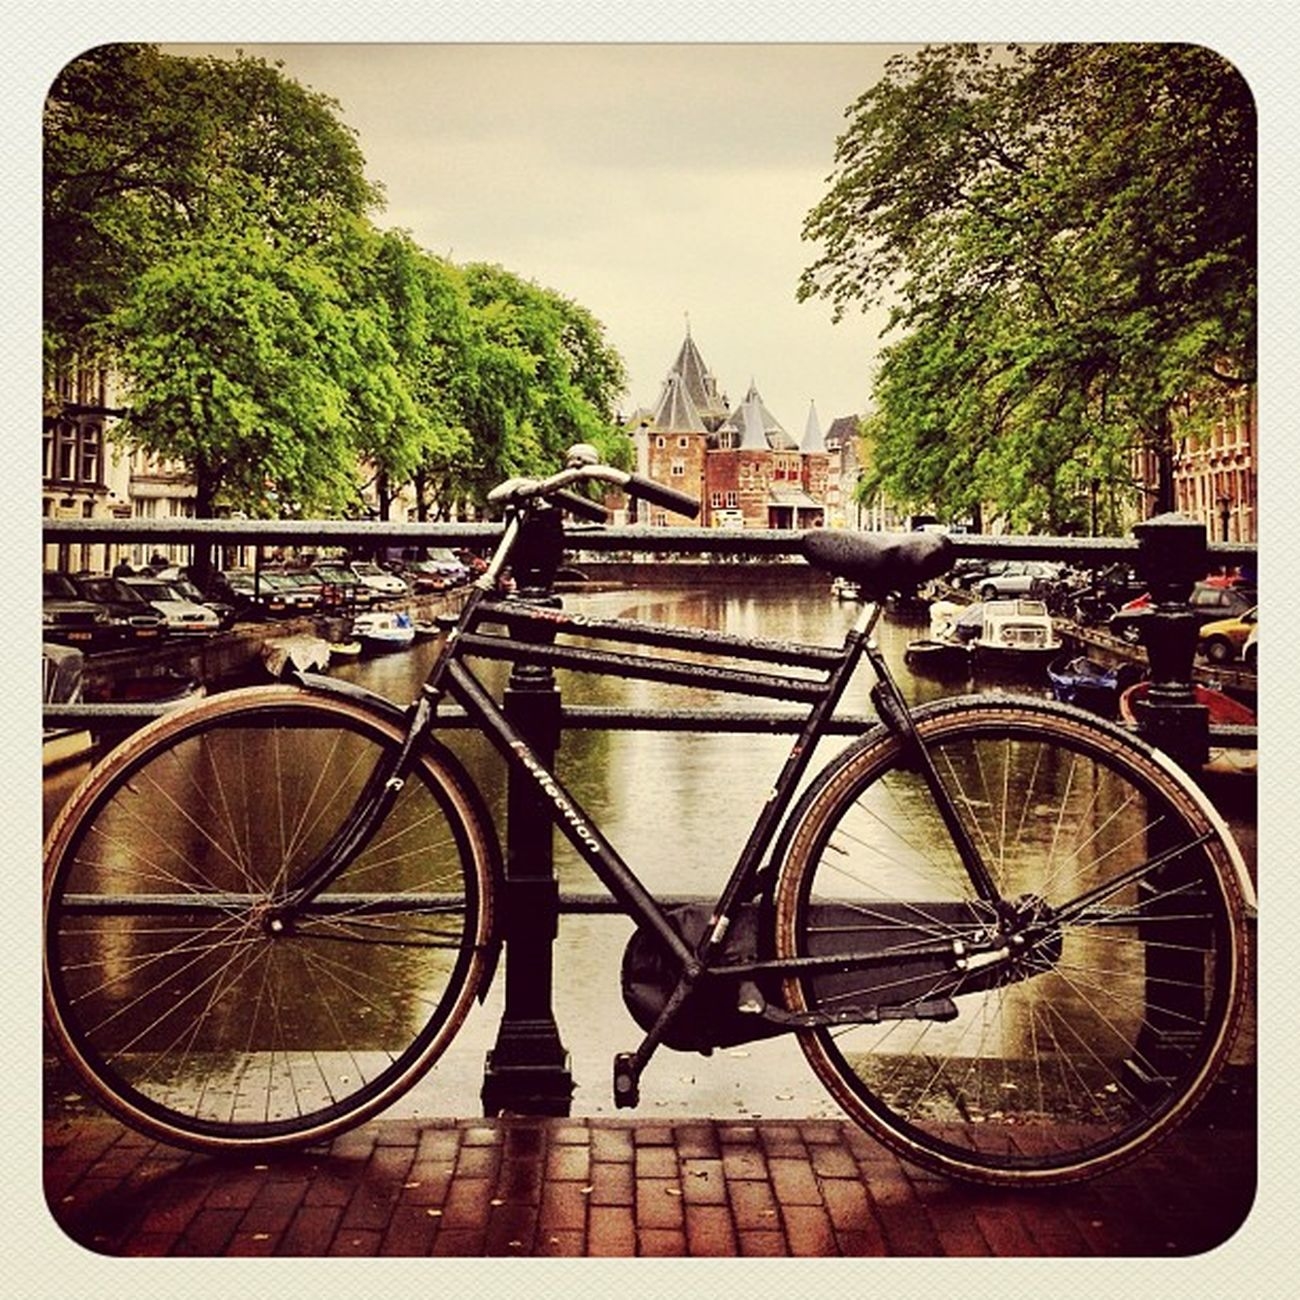 another #dutch #bike ☀?? #ebstyles_gf #earlybirdlove #jj #jj_forum #ubiquography #holland #amsterdam #ams_eb Amsterdam Holland Bike Dutch Jj  Earlybirdlove Jj_forum Ubiquography Landscapestyles_gf Ebstyles_gf Ams_eb